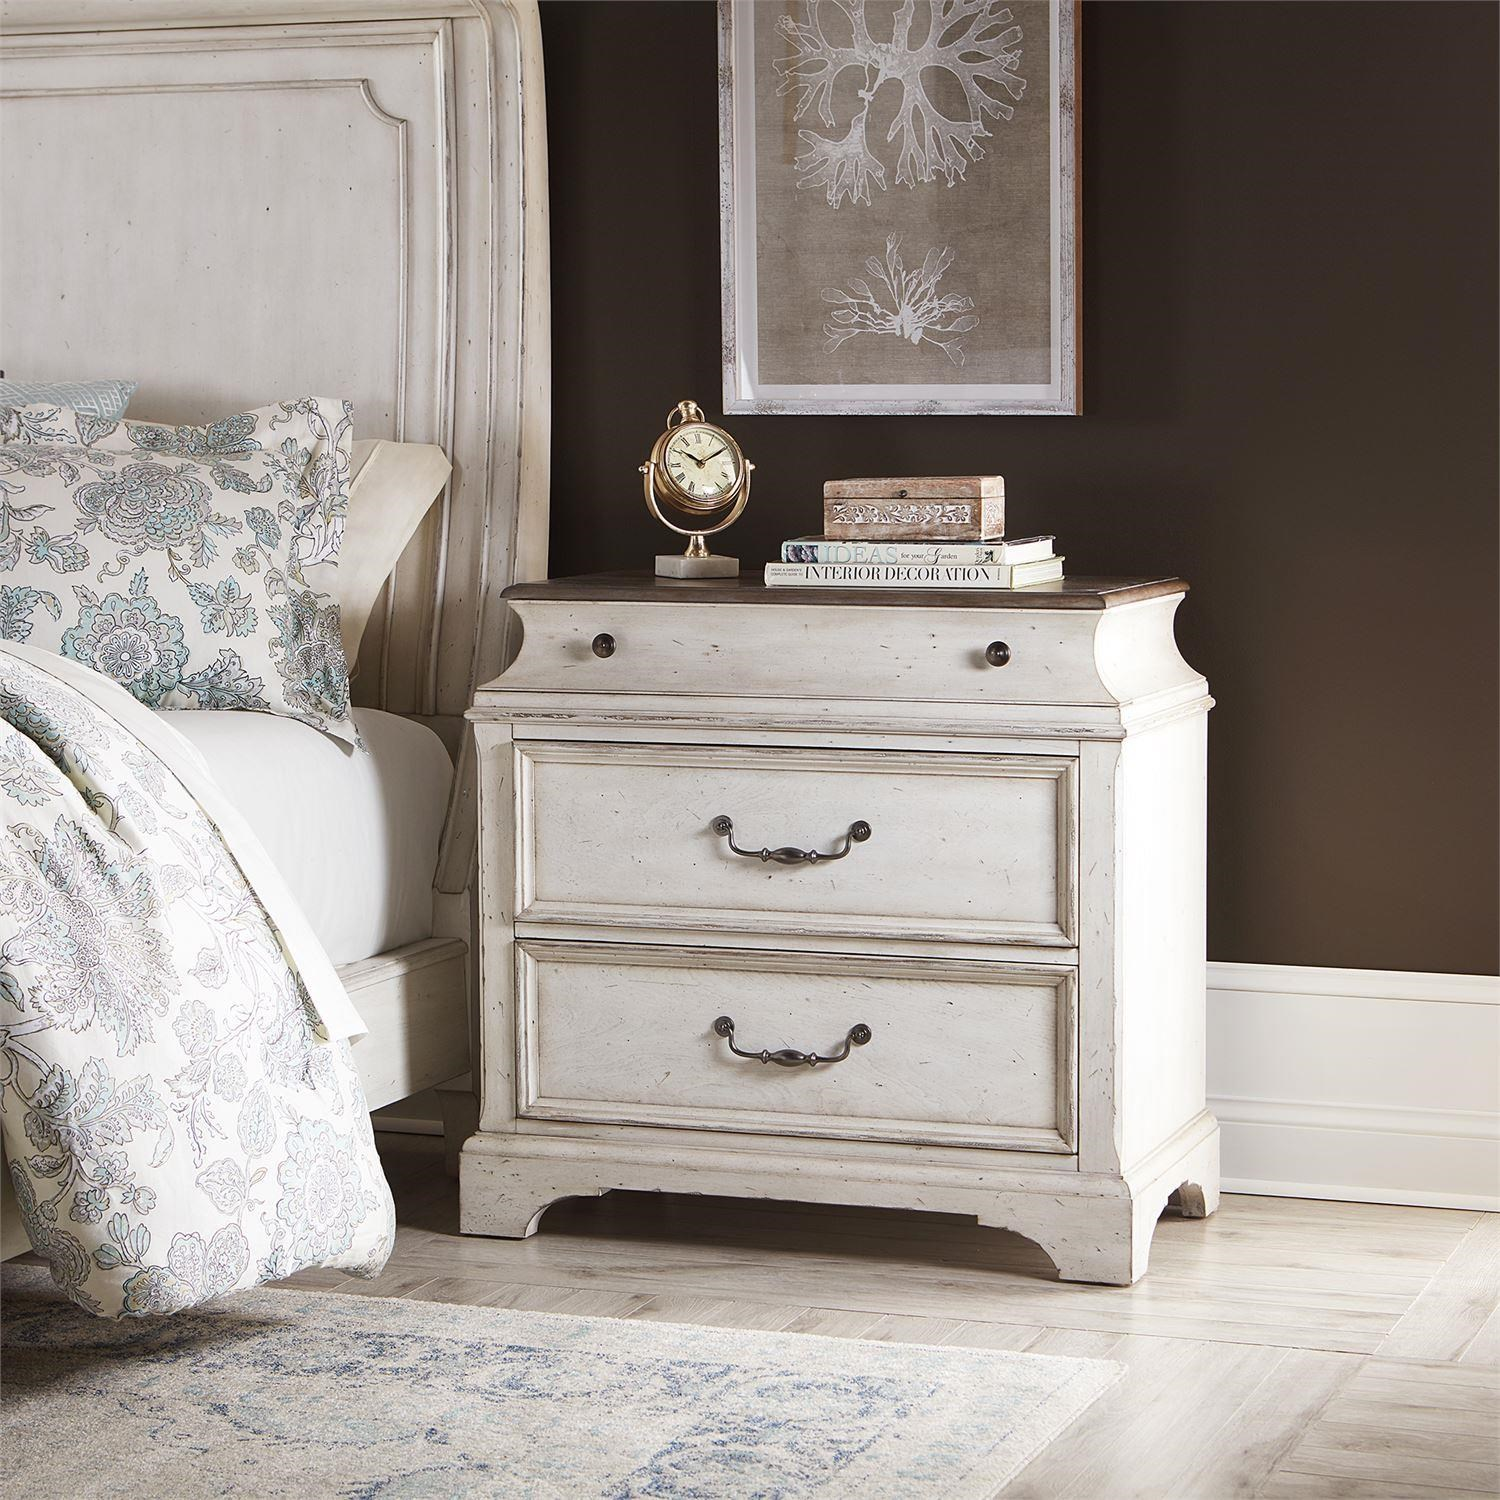 Accent Chest/Nightstand